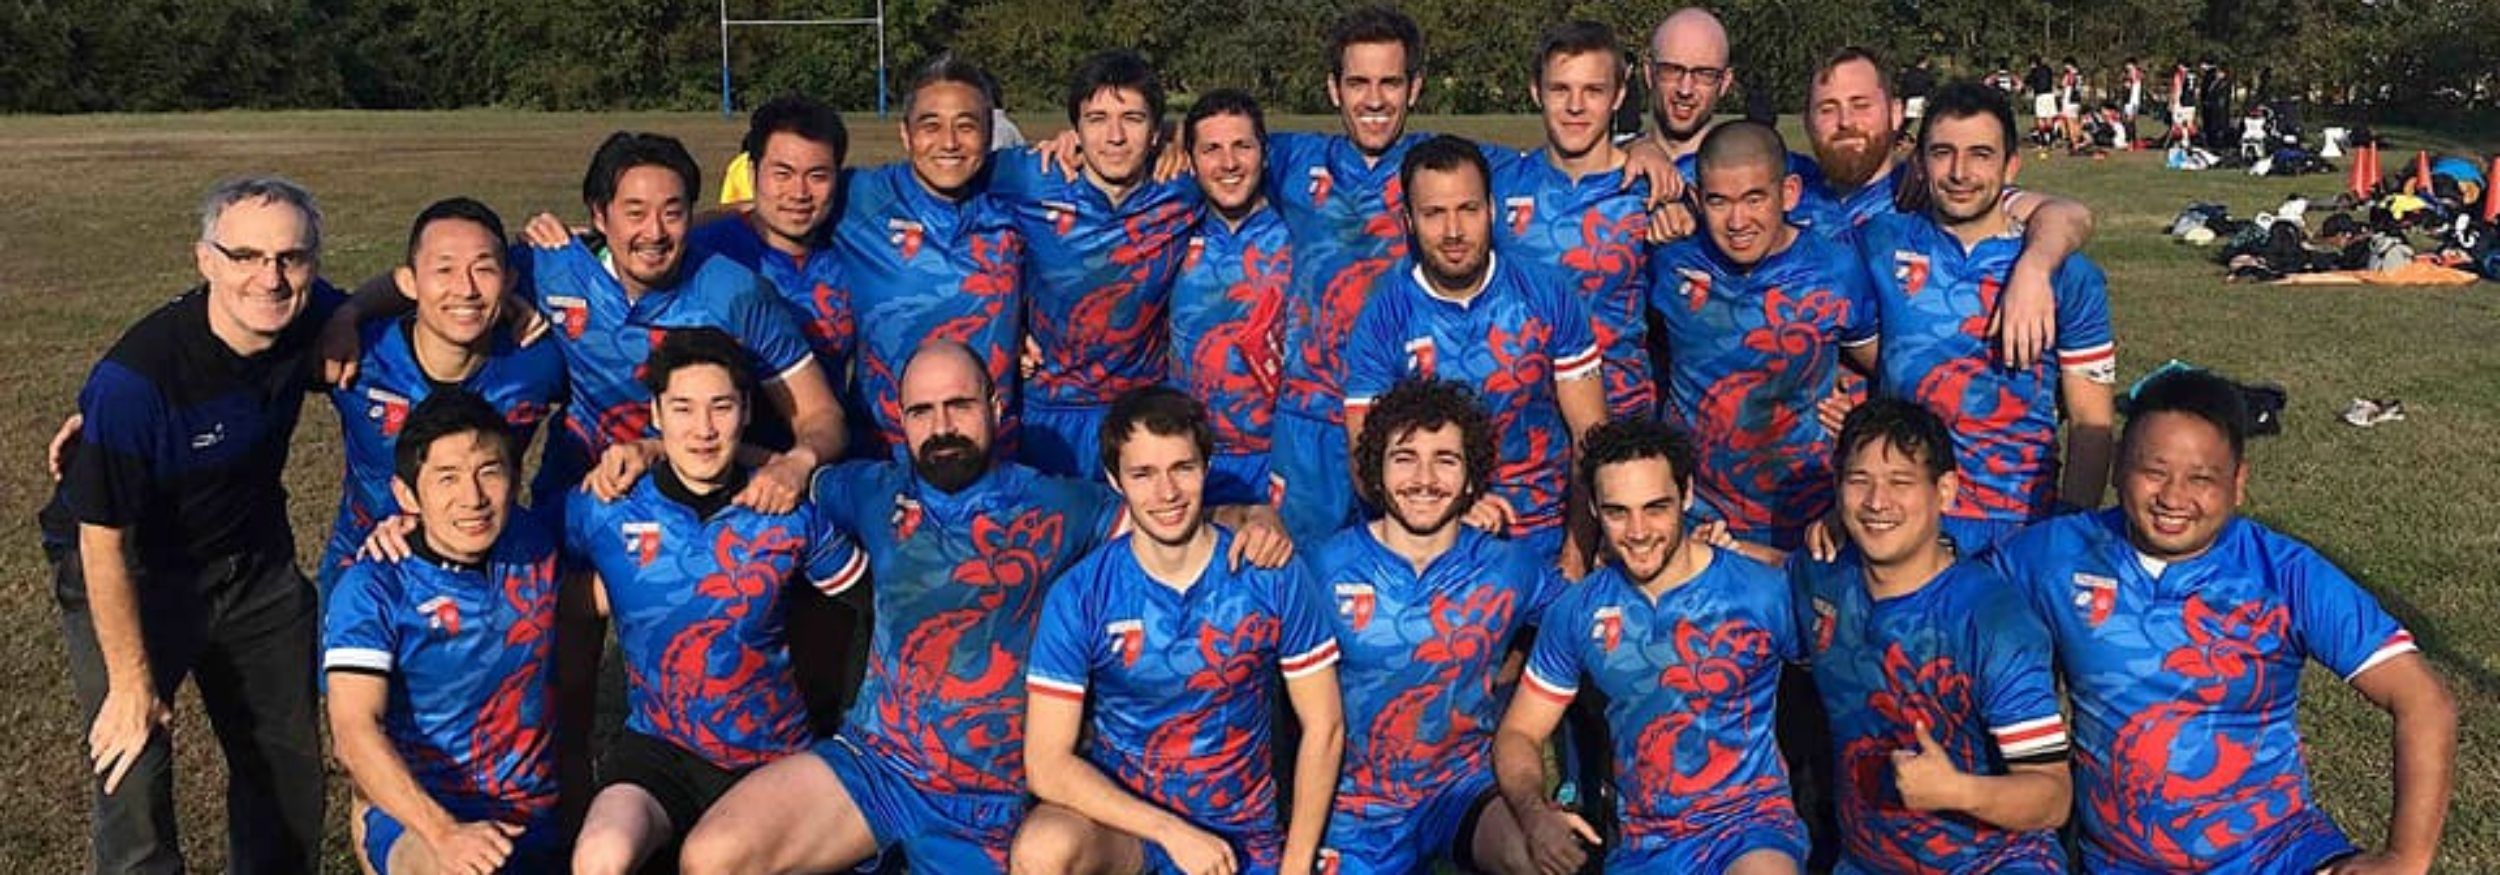 All France Rugby Club, the French Rugby Club in Tokyo